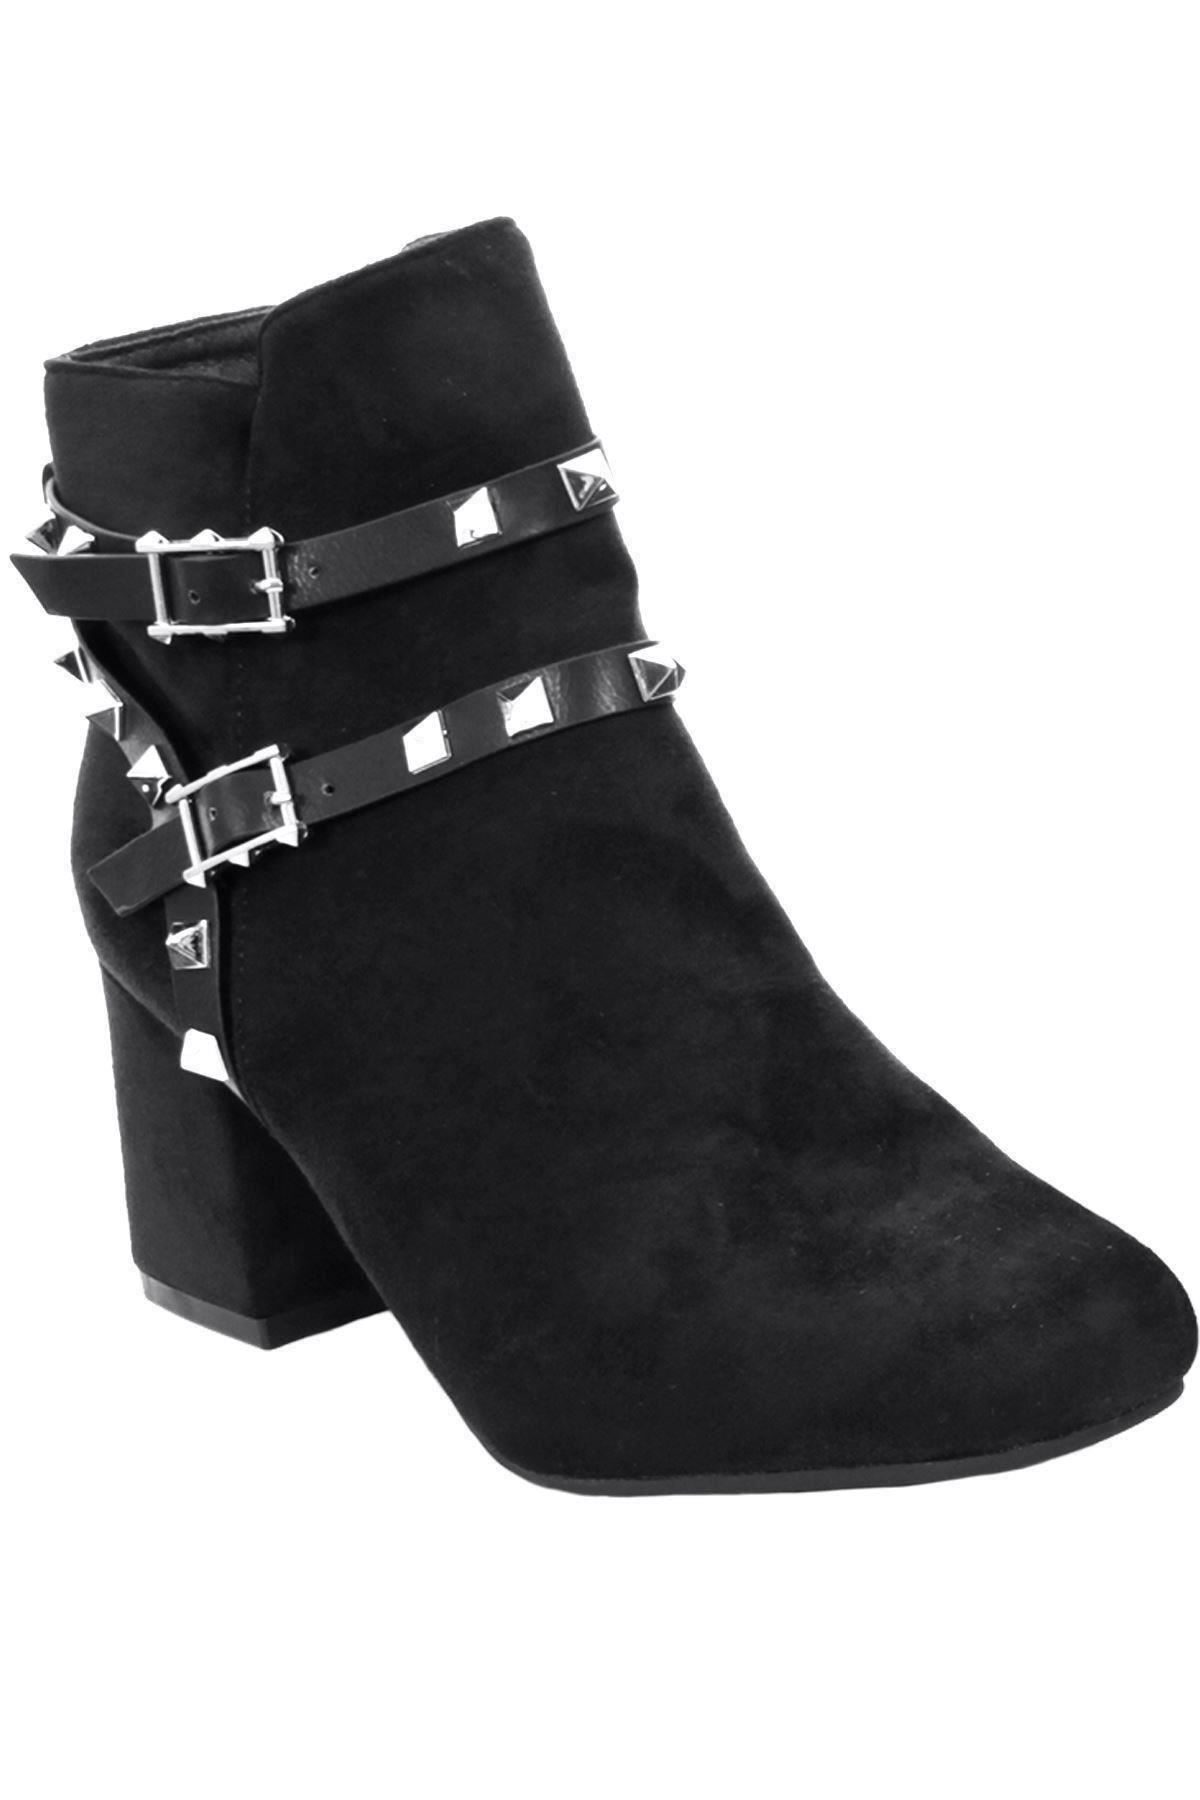 Women-s-Smart-Faux-Suede-Block-Heel-Spike-Studded-Strap-Ankle-Boots-Shoes